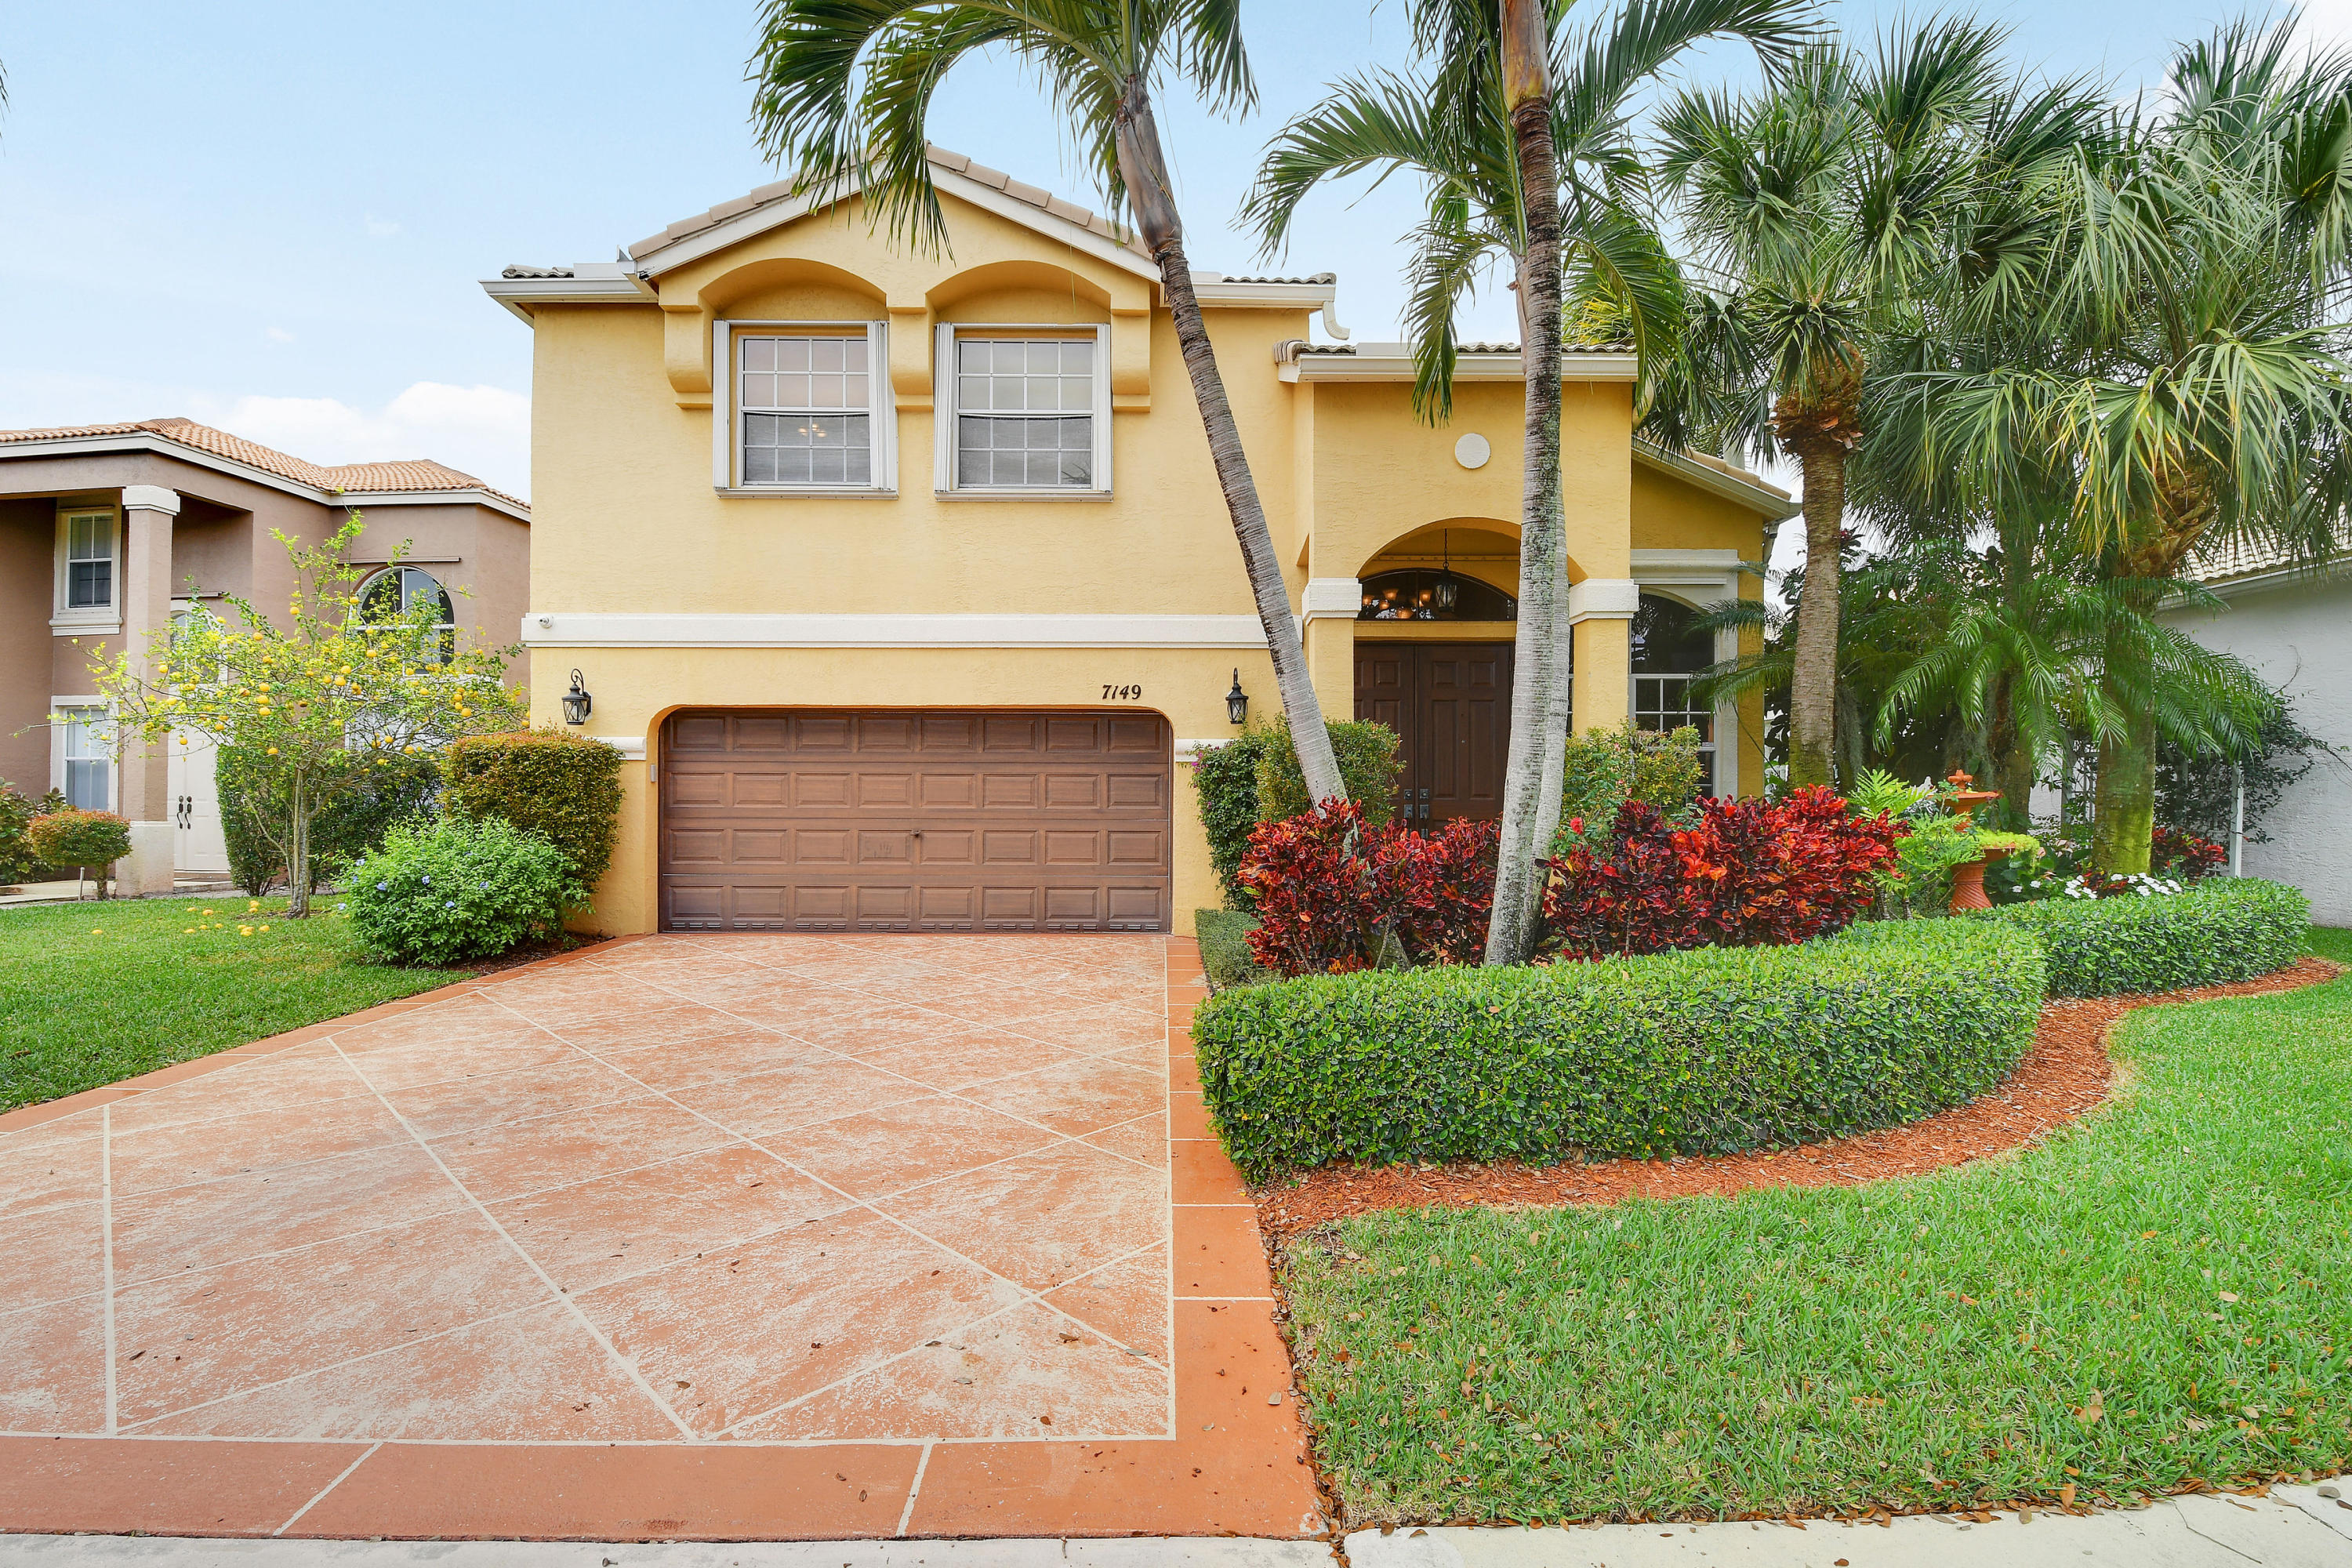 7149 Copperfield Circle, Lake Worth, Florida 33467, 4 Bedrooms Bedrooms, ,3 BathroomsBathrooms,Single Family,For Sale,Smith Farms,Copperfield,RX-10504200